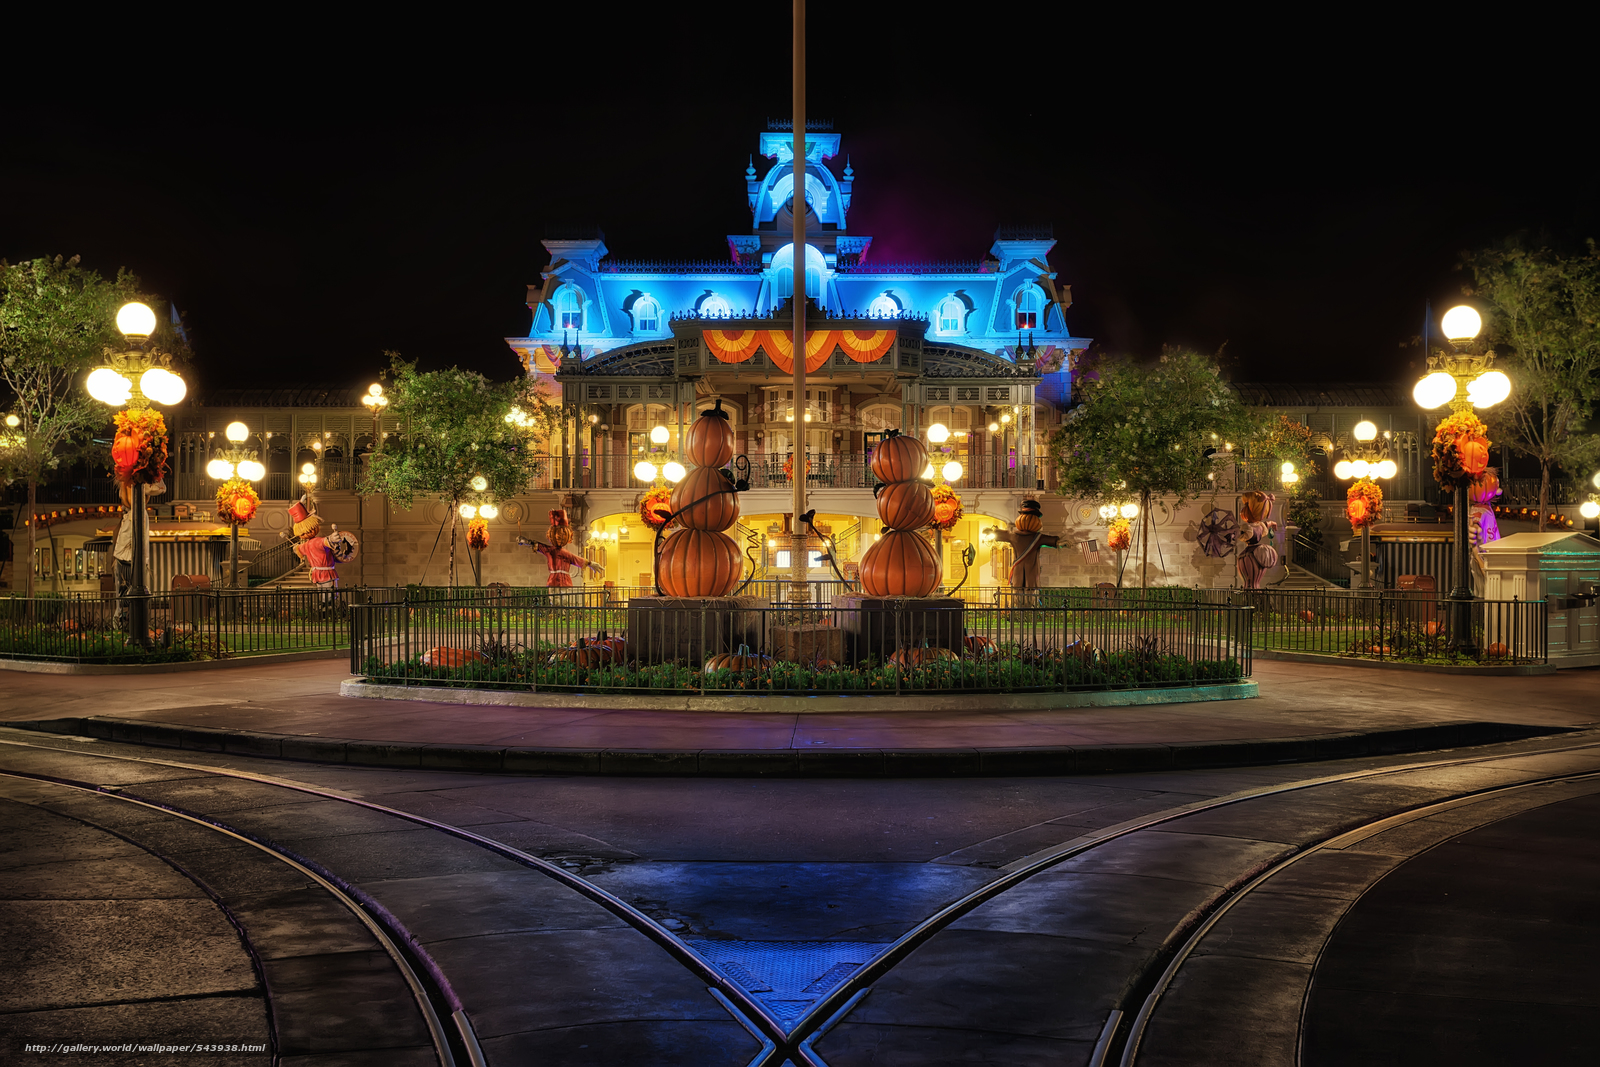 315 3154271 download wallpaper halloween the magic kingdom holiday disney